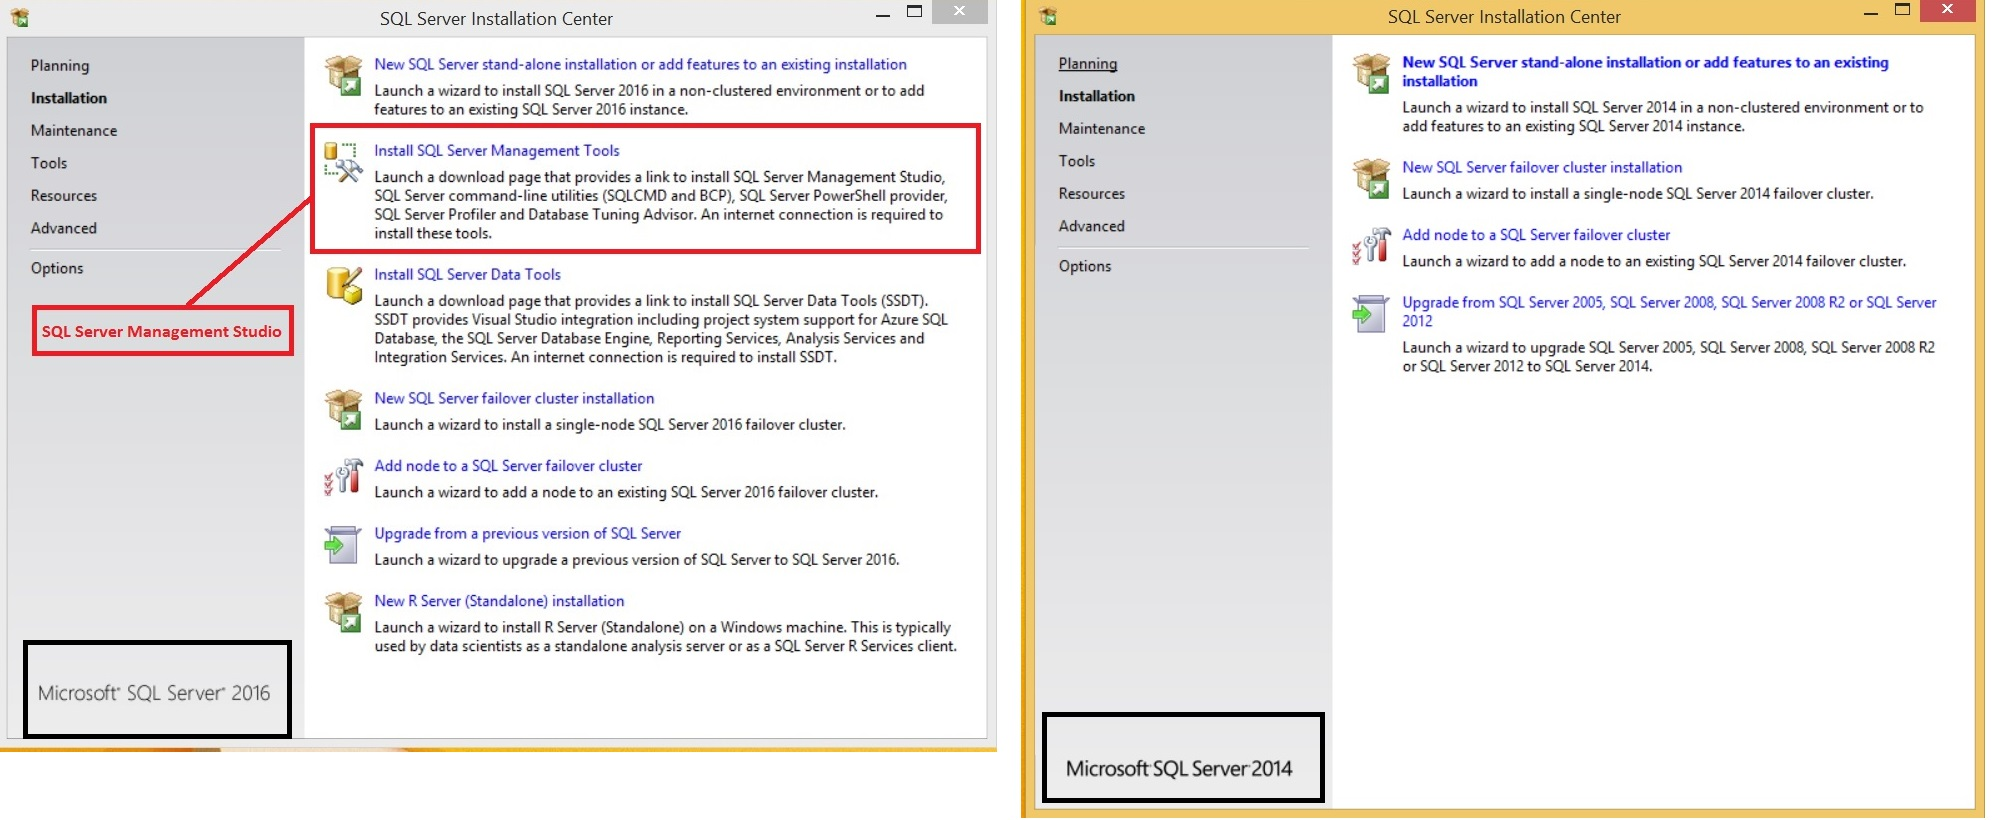 SQL Server 2016 vs SQL Server 2014 Installation - First screen comparison